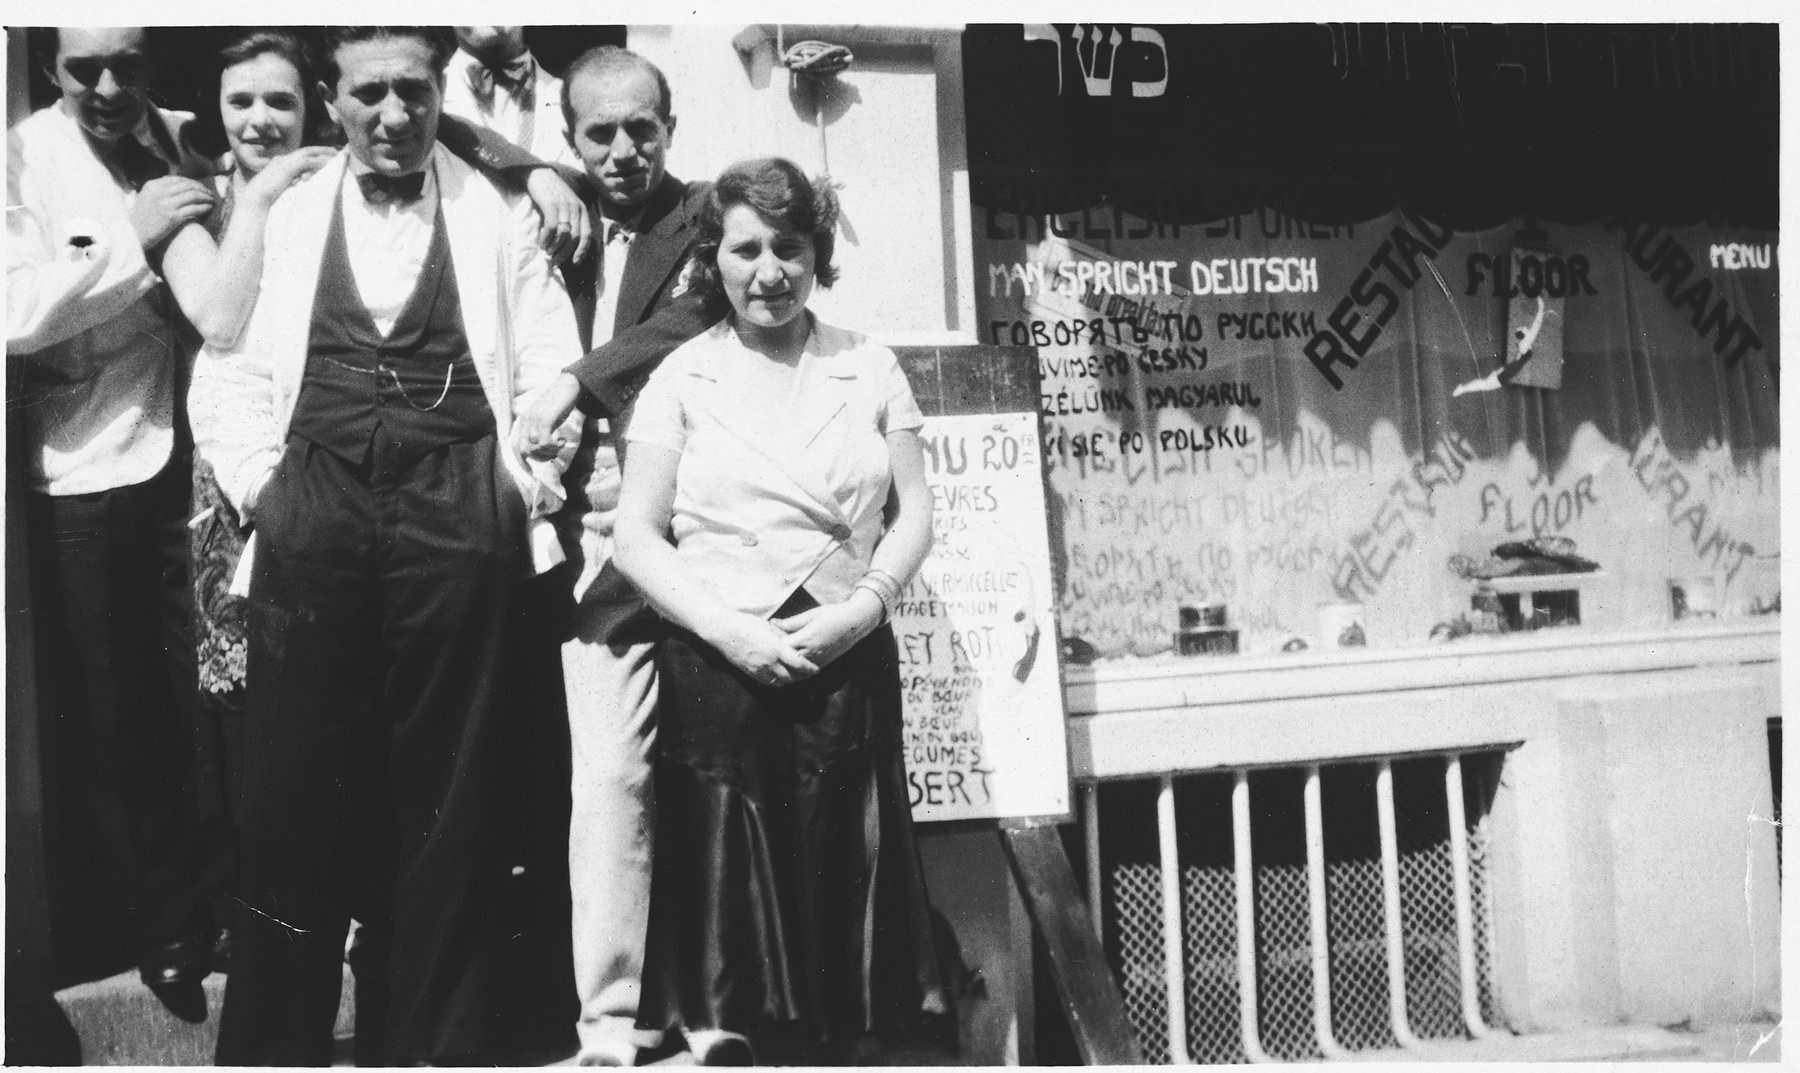 A Jewish family poses in front of their kosher restaurant in Ostend, Belgium.   Pictured in front are the three siblings, Mendel, Henri and Golda Abramowicz.  Henry was later deported to Auschwitz where he perished.